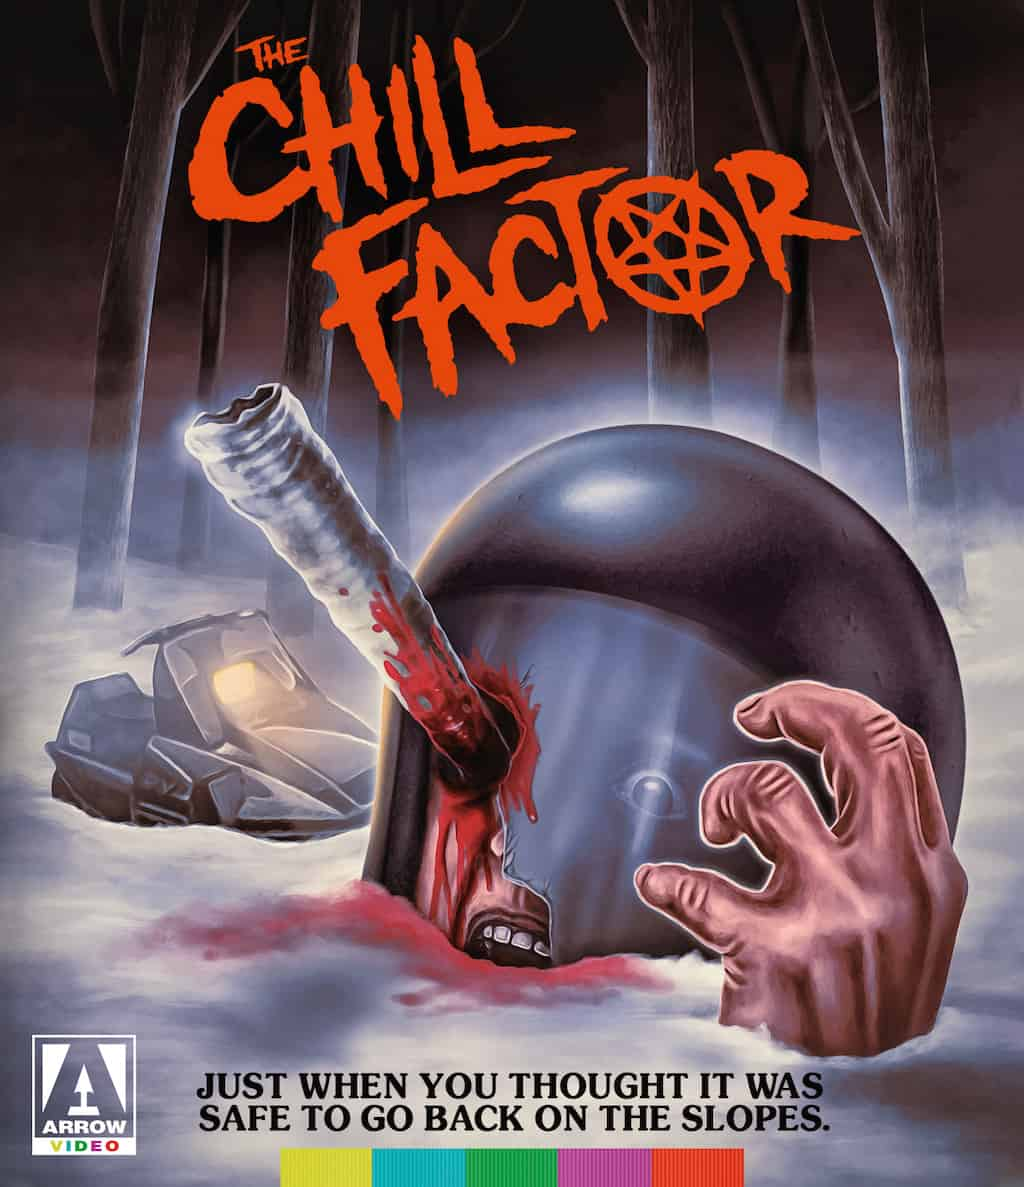 the chill factor blu-ray review